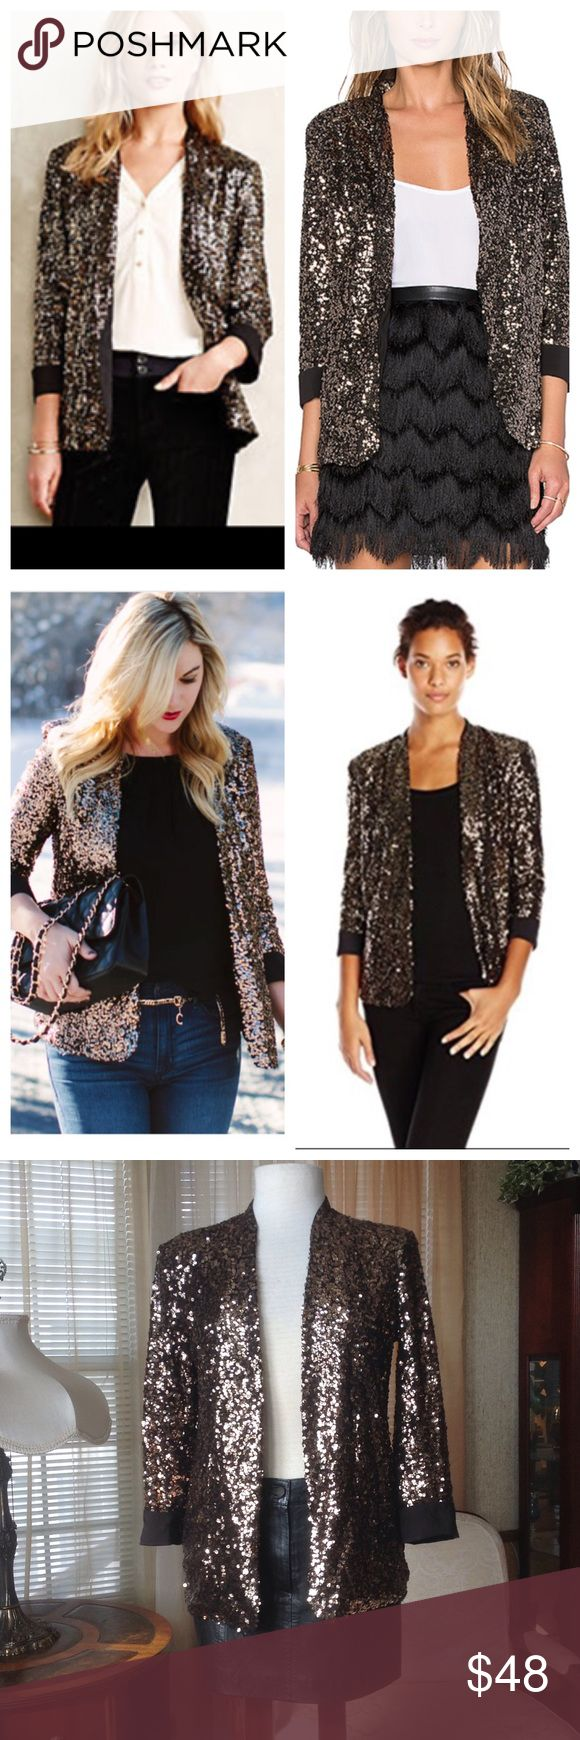 Sam Edelman sequined blazer Worn just once. Like new. .                               c Sam Edelman Jackets & Coats Blazers